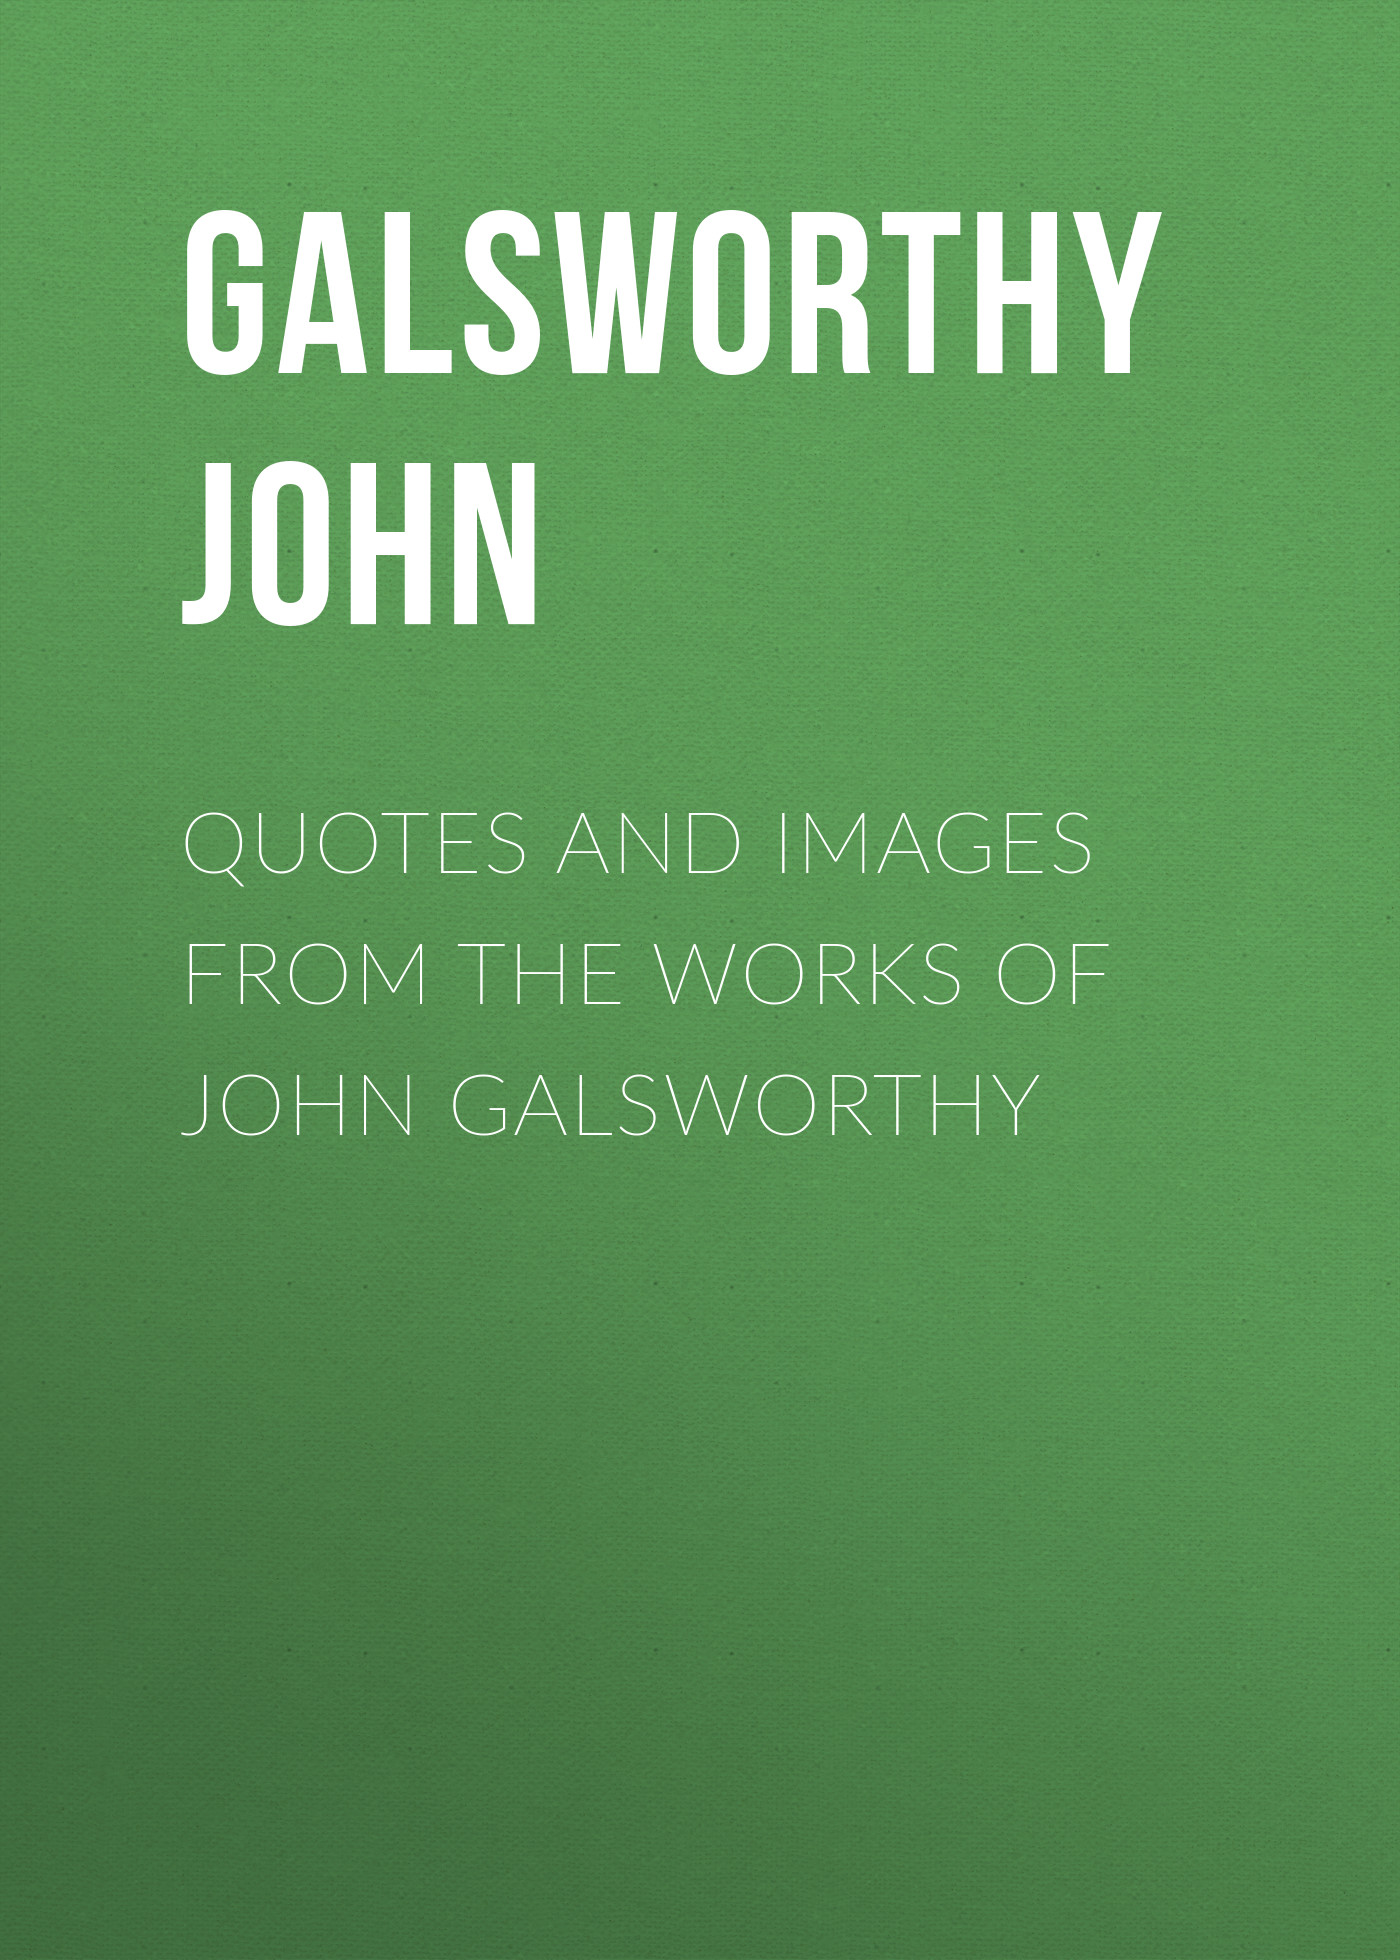 Galsworthy John Quotes and Images From the Works of John Galsworthy